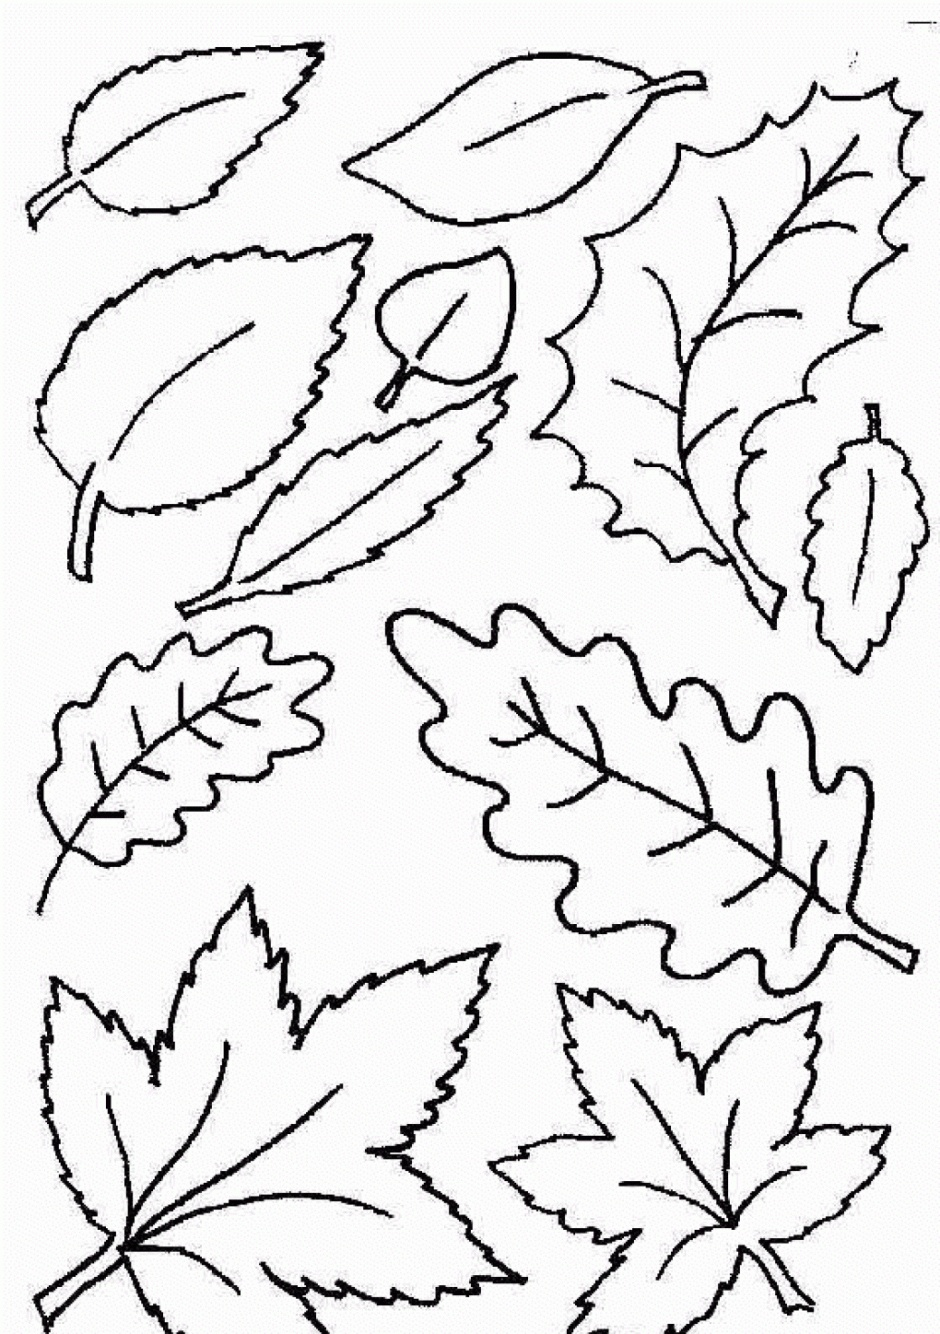 Coloring Ideas : Free Printable Leaf Coloring Pages Fall Leaves And - Free Printable Pictures Of Autumn Leaves